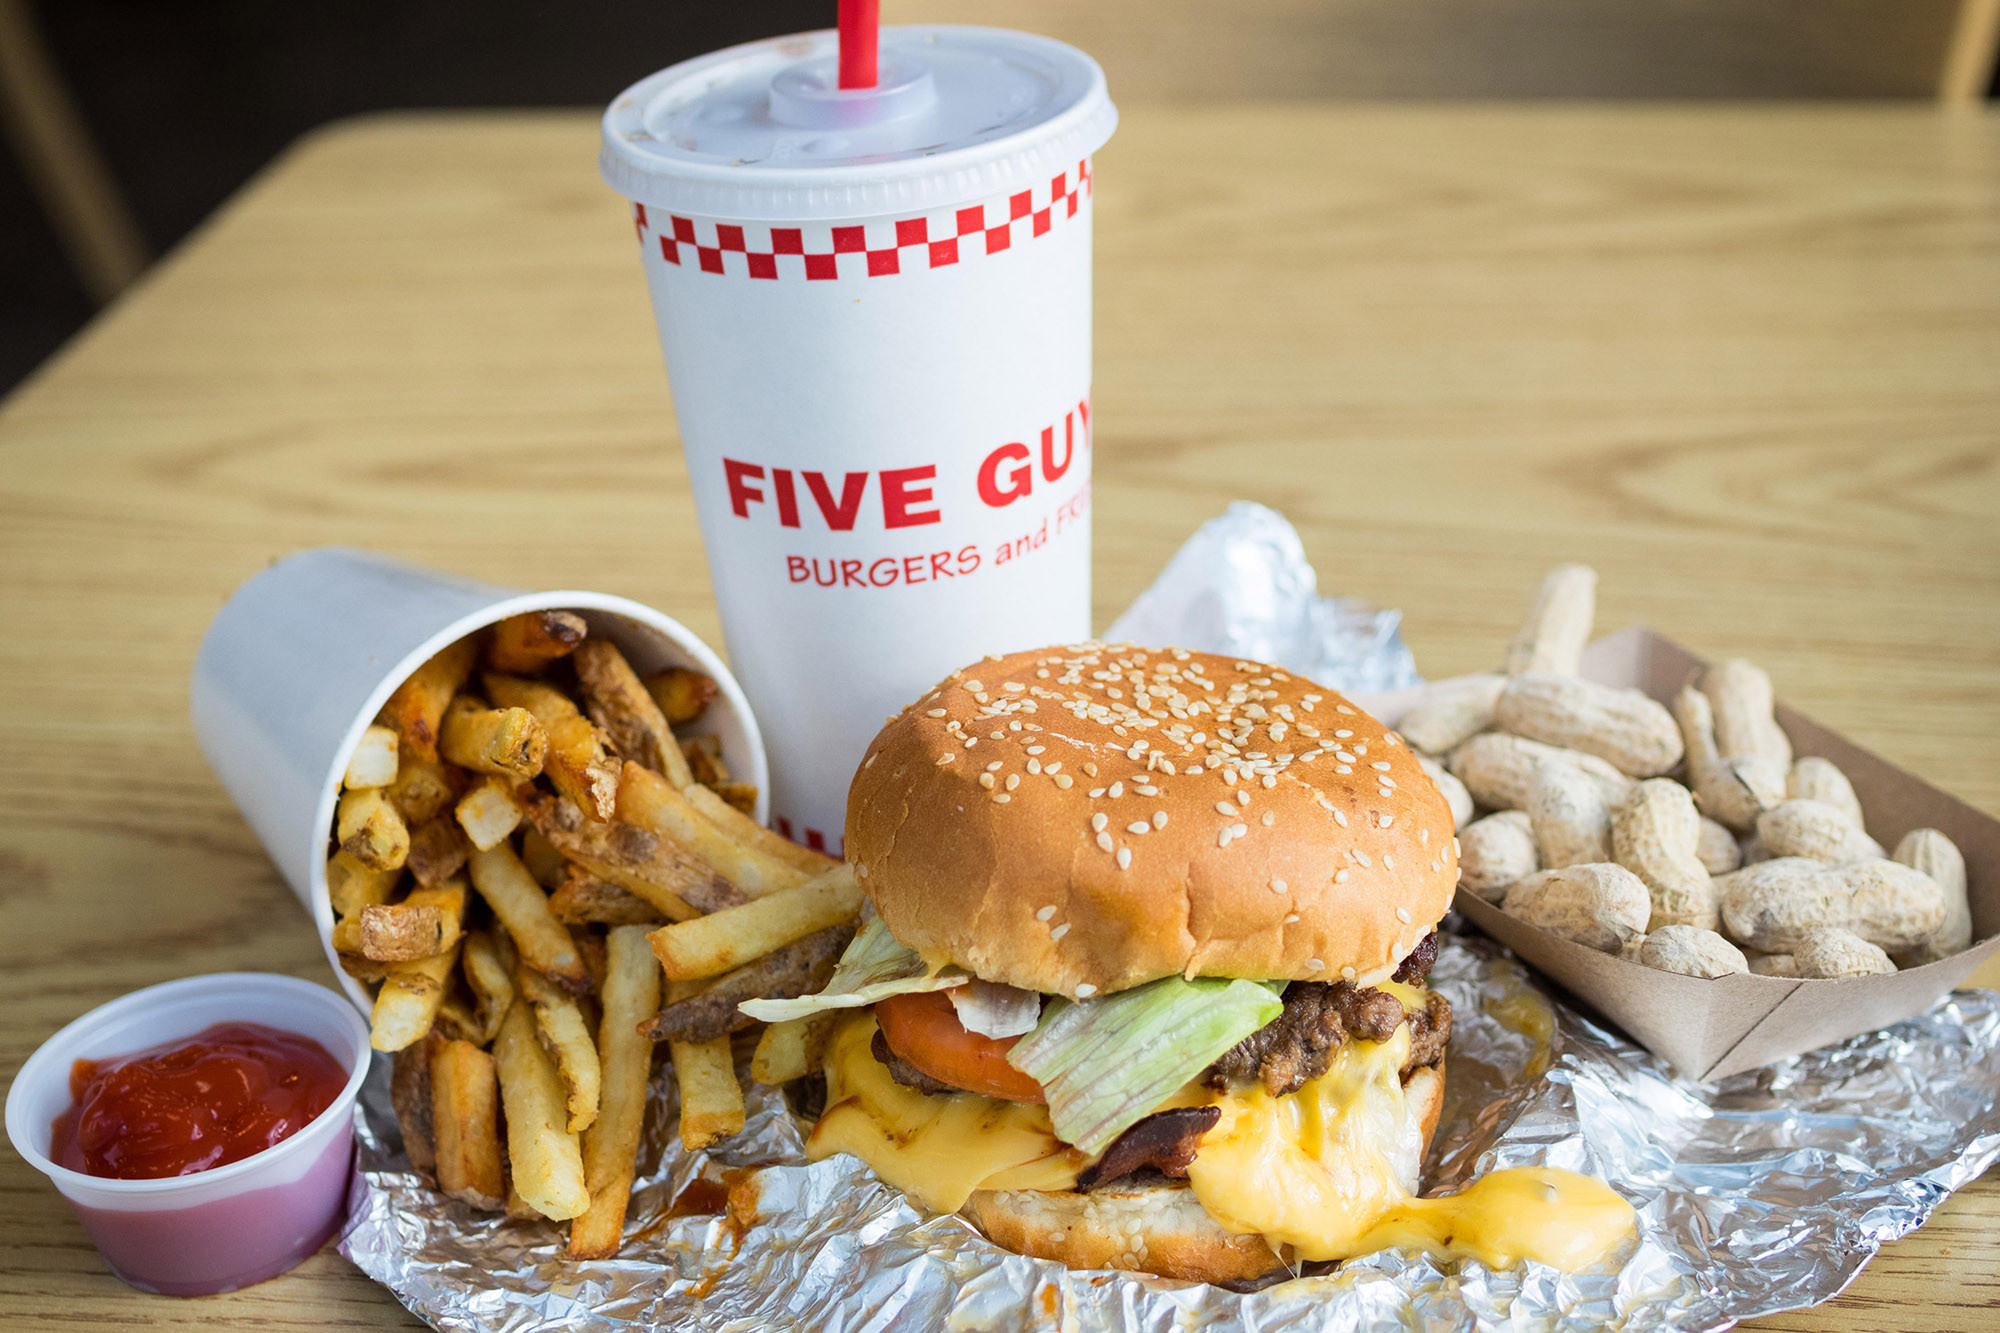 A bacon cheeseburger, French fries, and peanuts from Five Guys Burgers and Fries, an American fast casual restaurant chain.